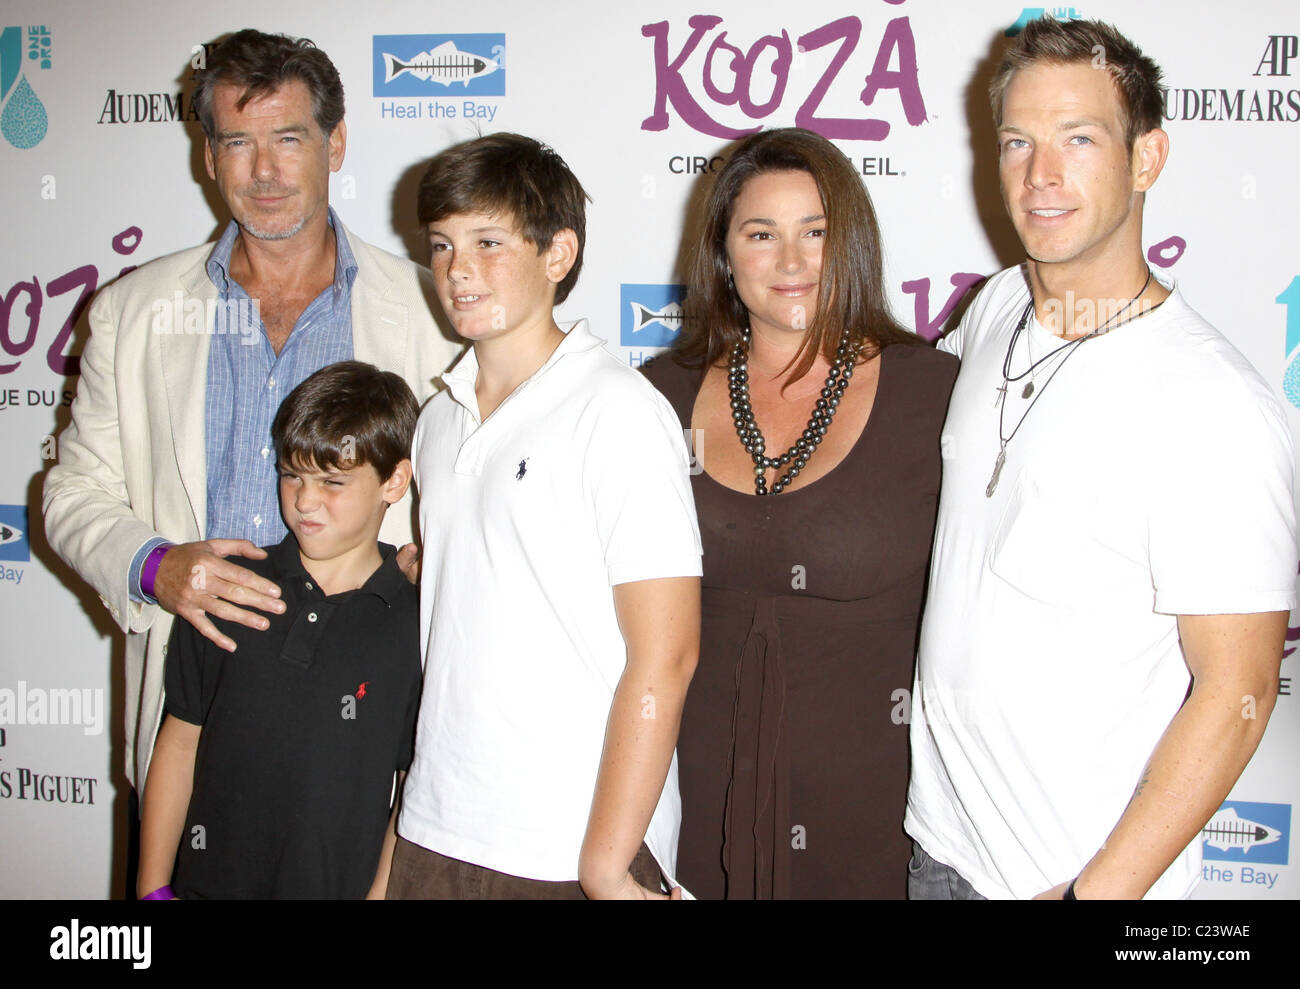 keely shaye smith pierce brosnankeely shaye smith instagram, keely shaye smith health problems, keely shaye smith music video, keely shaye smith 2016, keely shaye smith, keely shaye smith 2015, keely shaye smith 2014, keely shaye smith 2001, keely shaye smith photos, keely shaye smith pierce brosnan, keely shaye smith pictures, keely shaye smith wedding, keely shaye smith wedding photos, keely shaye smith size, keely shaye smith beach, keely shaye smith images, keely shaye smith unsolved mysteries, keely shaye smith net worth, keely shaye smith peso